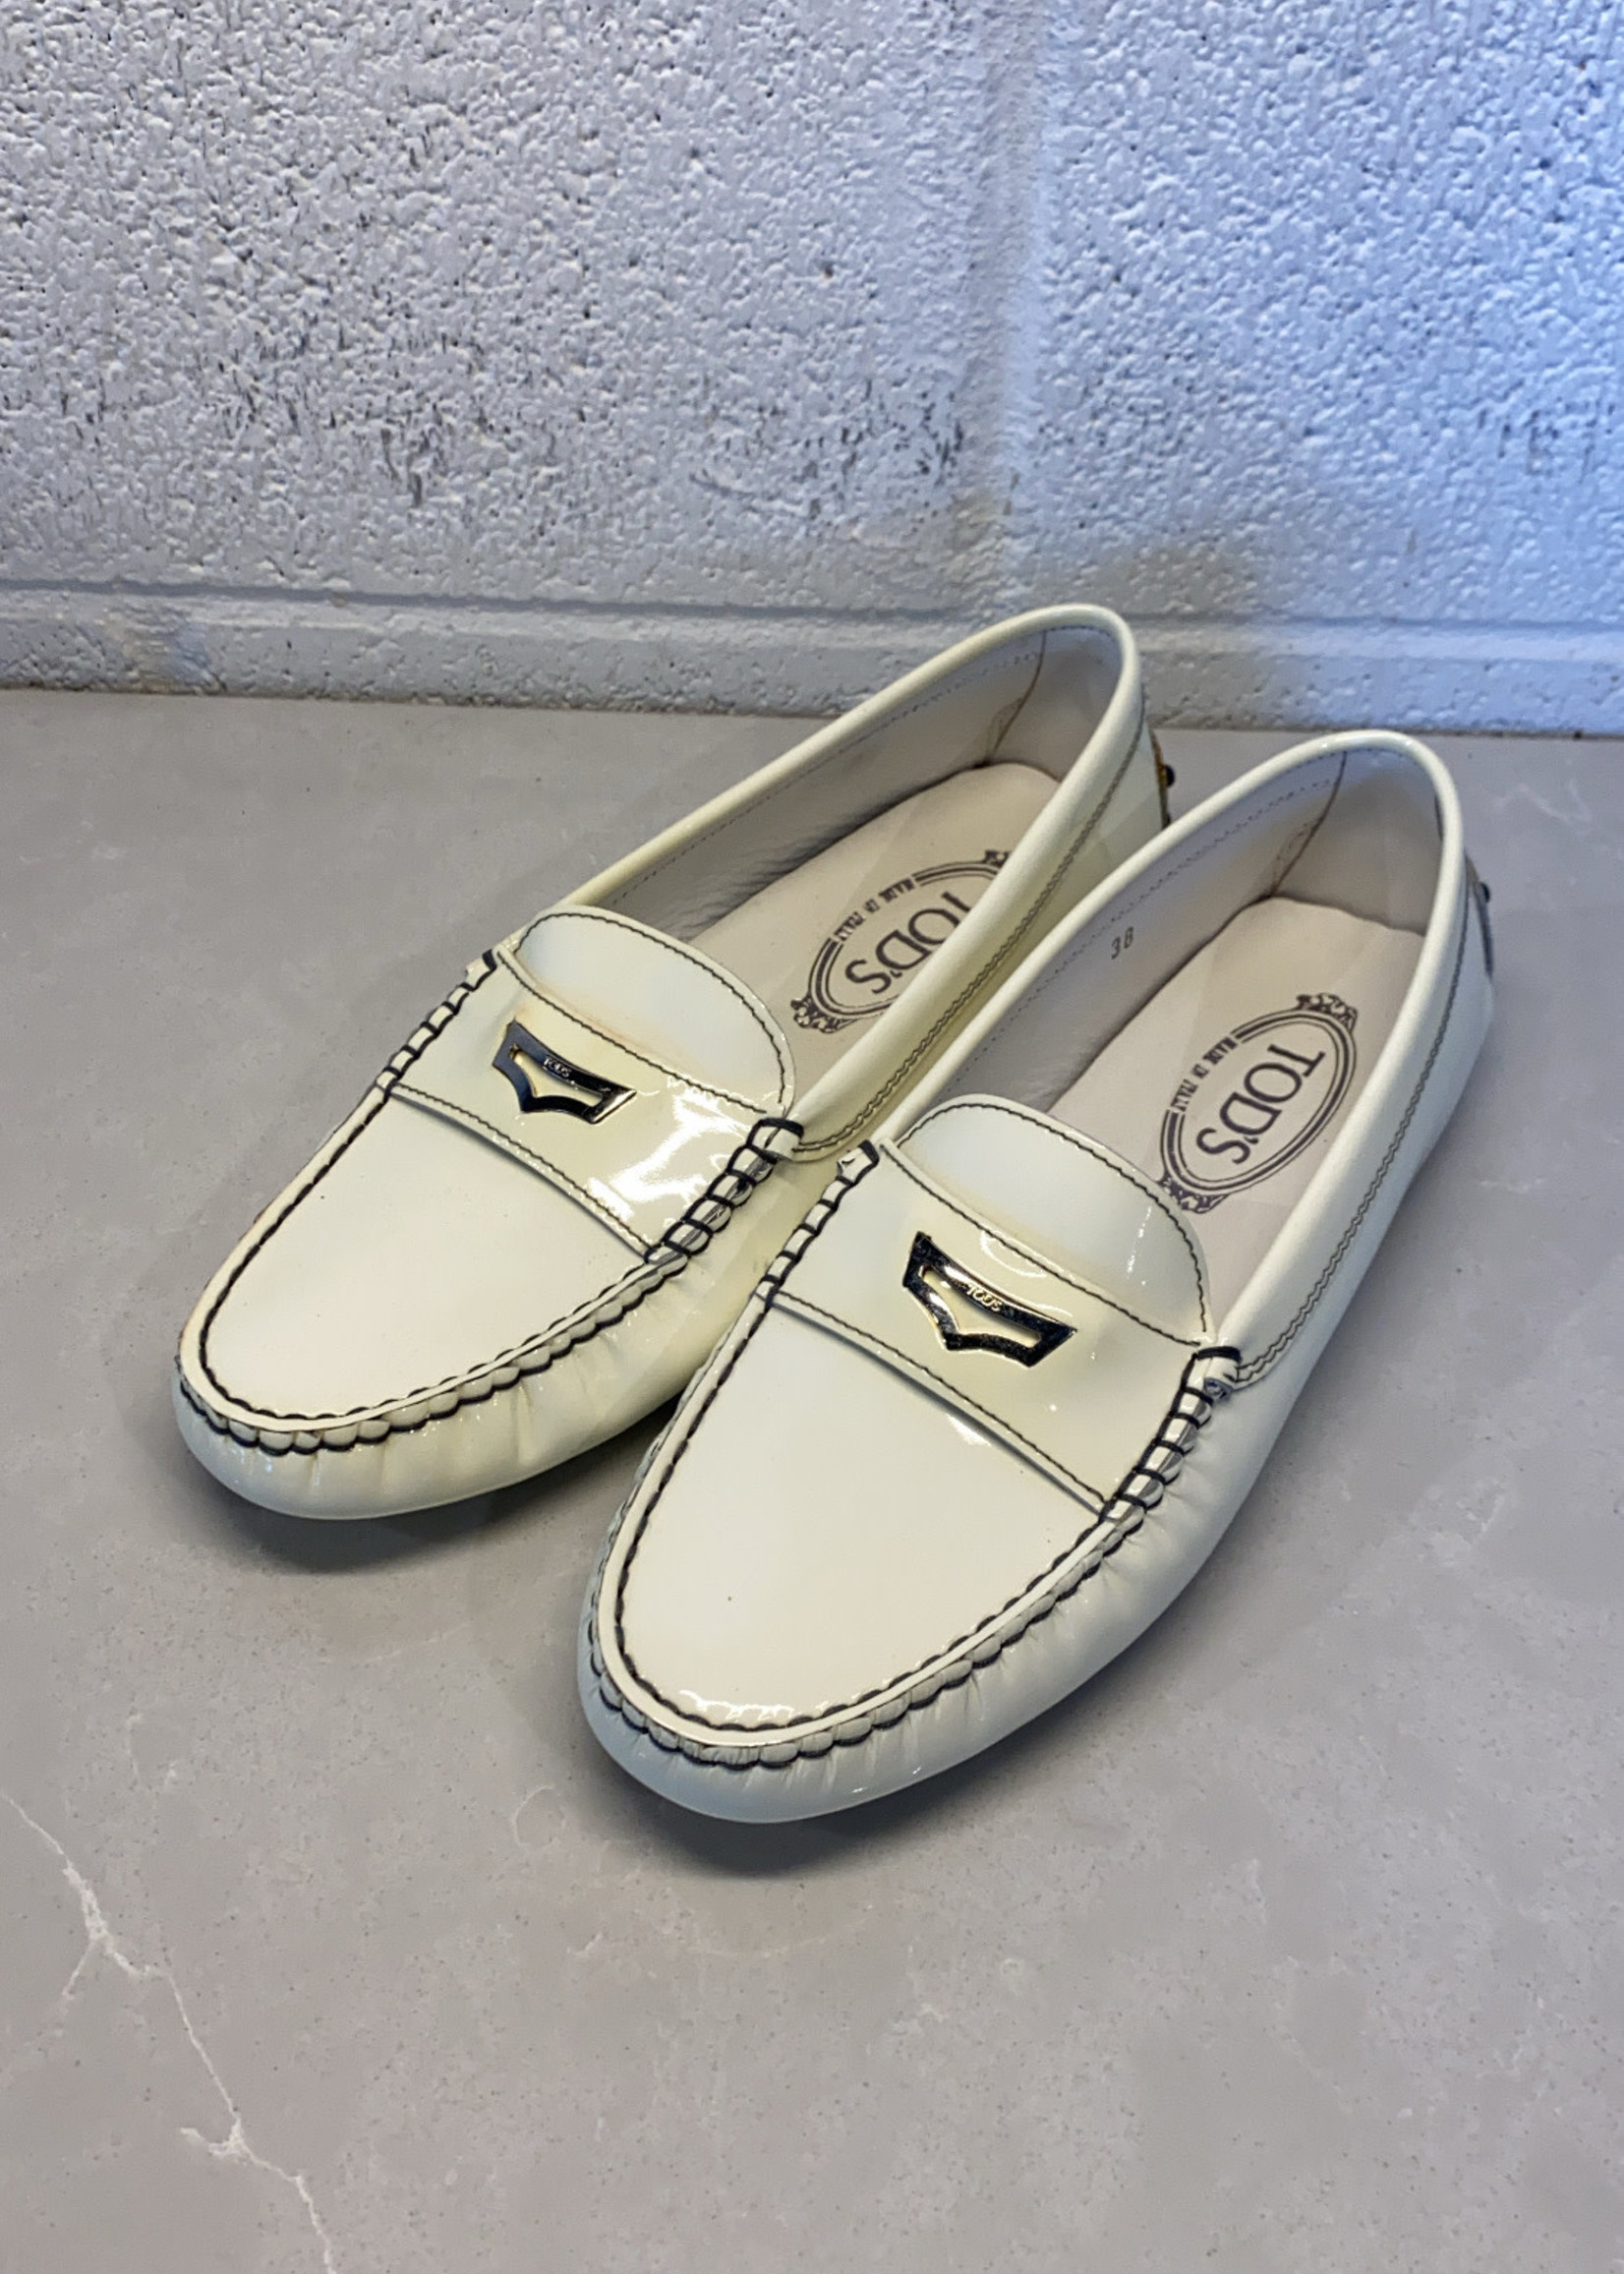 Tods White Patent Leather Loafers As Is (Retail: $545)